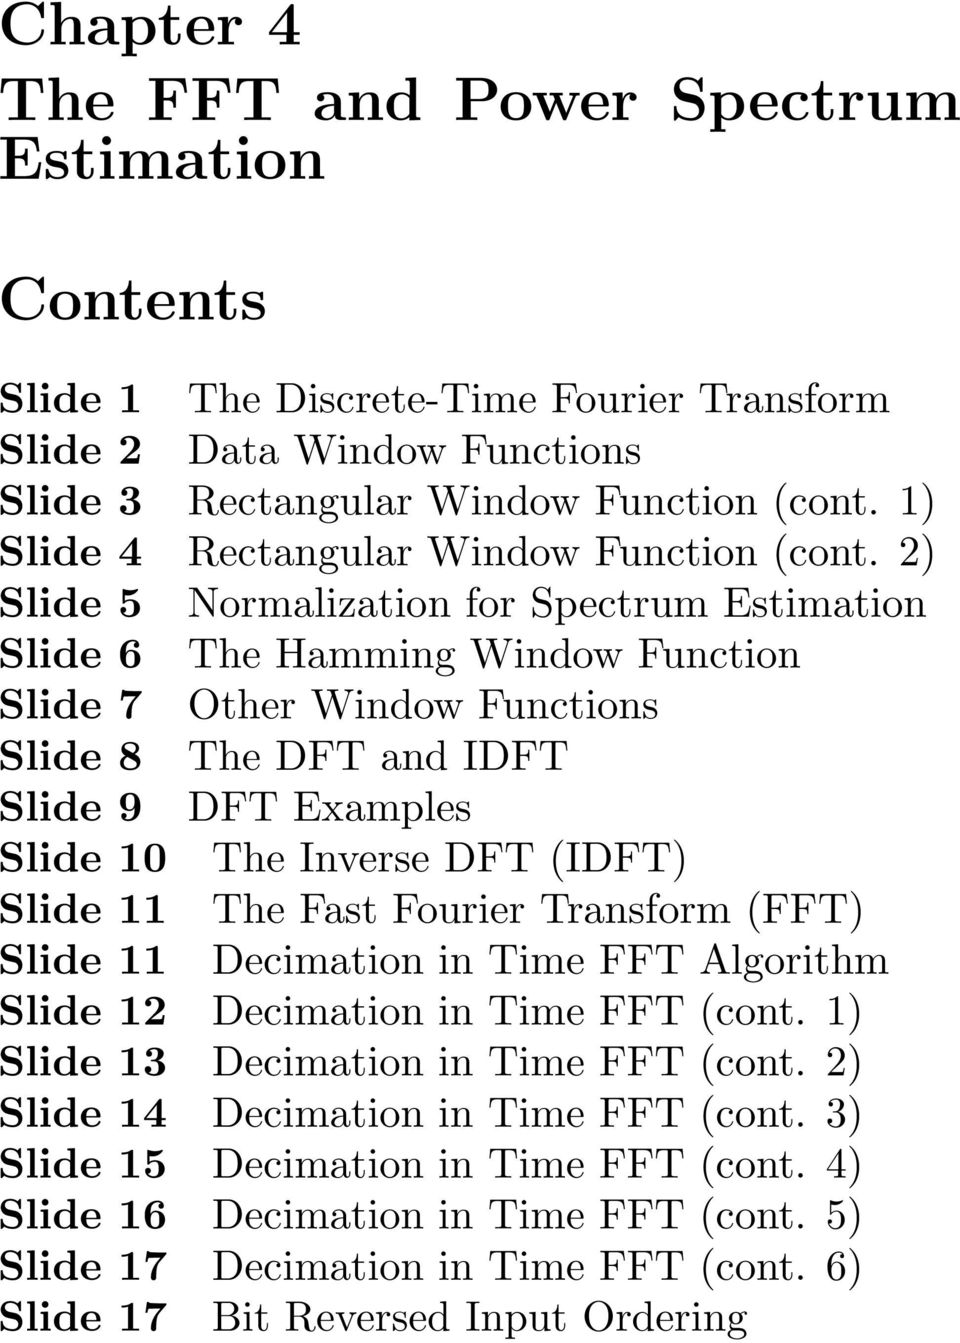 Chapter 4 The FFT and Power Spectrum Estimation - PDF